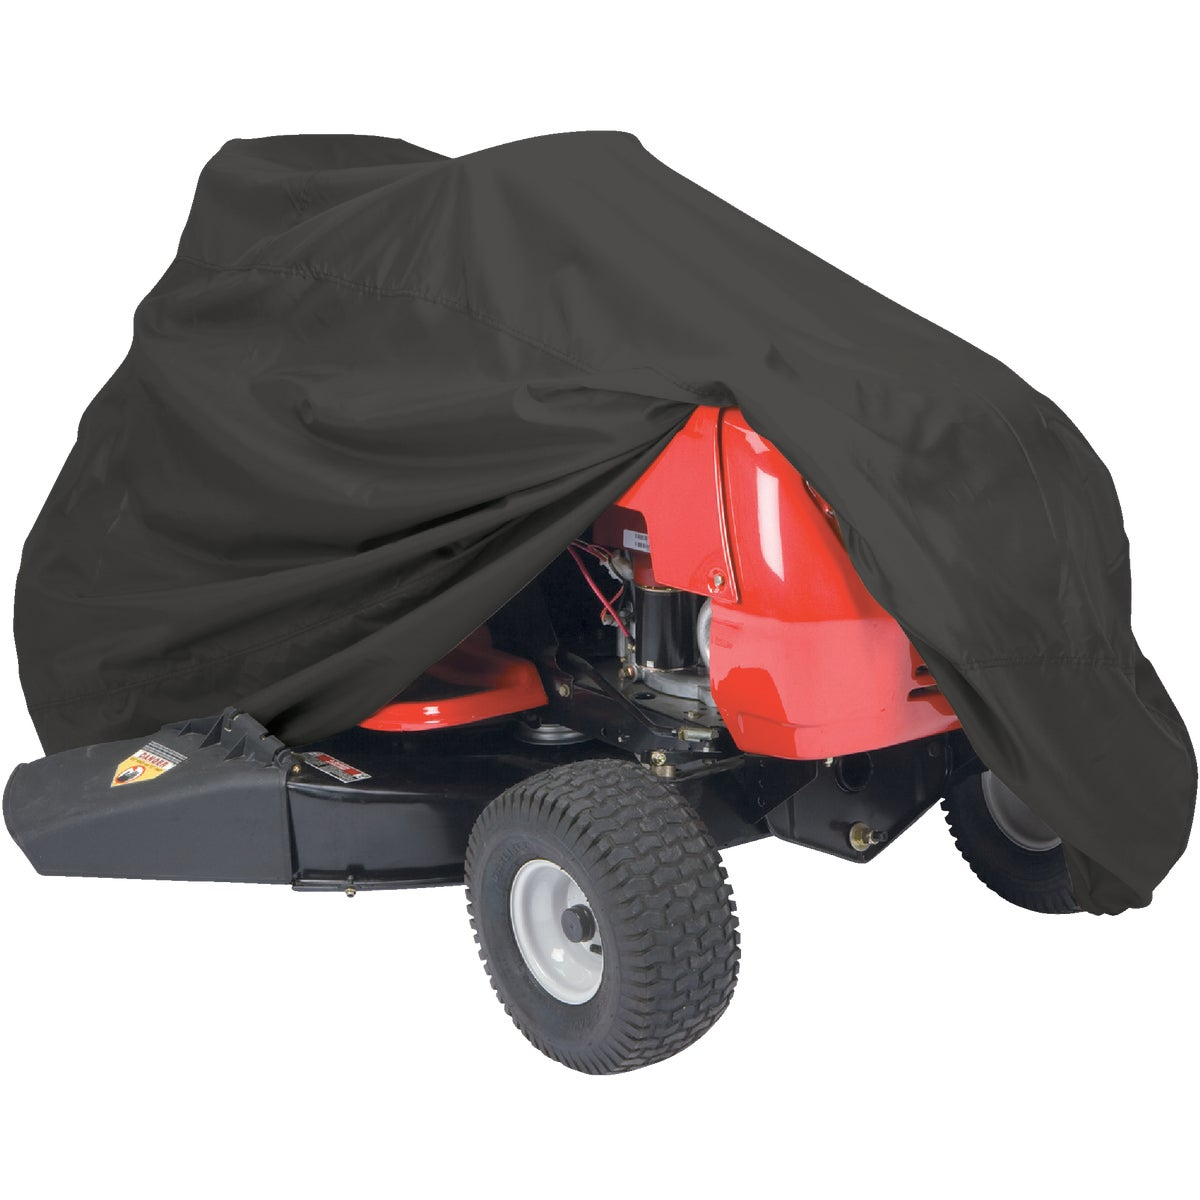 UNIV FIT TRACTOR COVER - 490-290-0013 by Arnold Corp